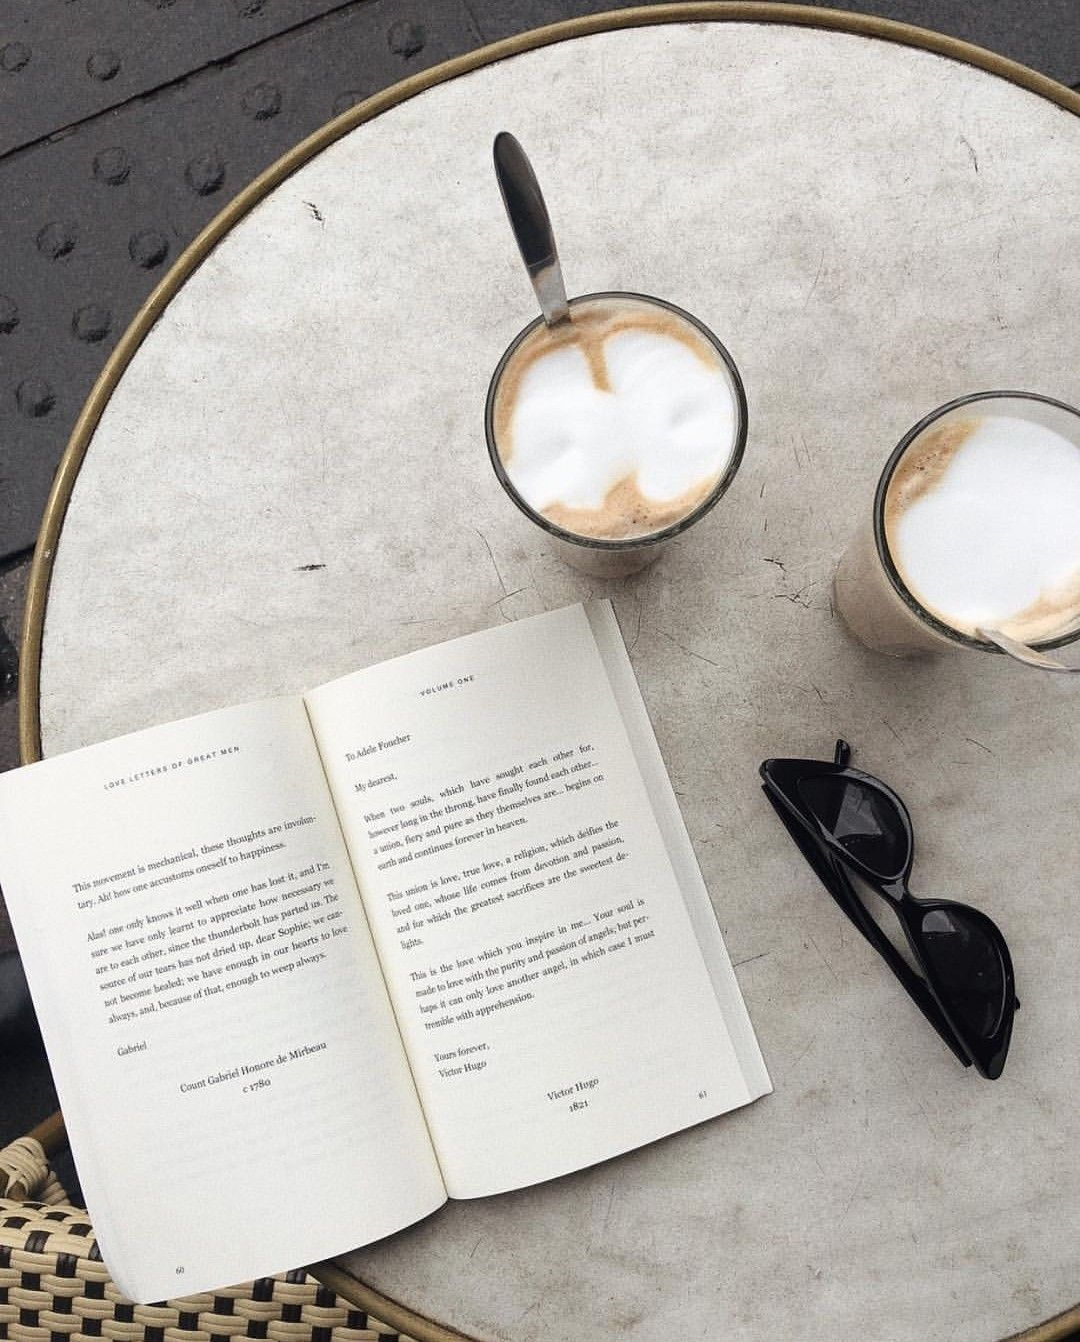 Pin By Victoria On Photography Inspiration In 2020 Coffee Love Coffee Cafe Coffee And Books